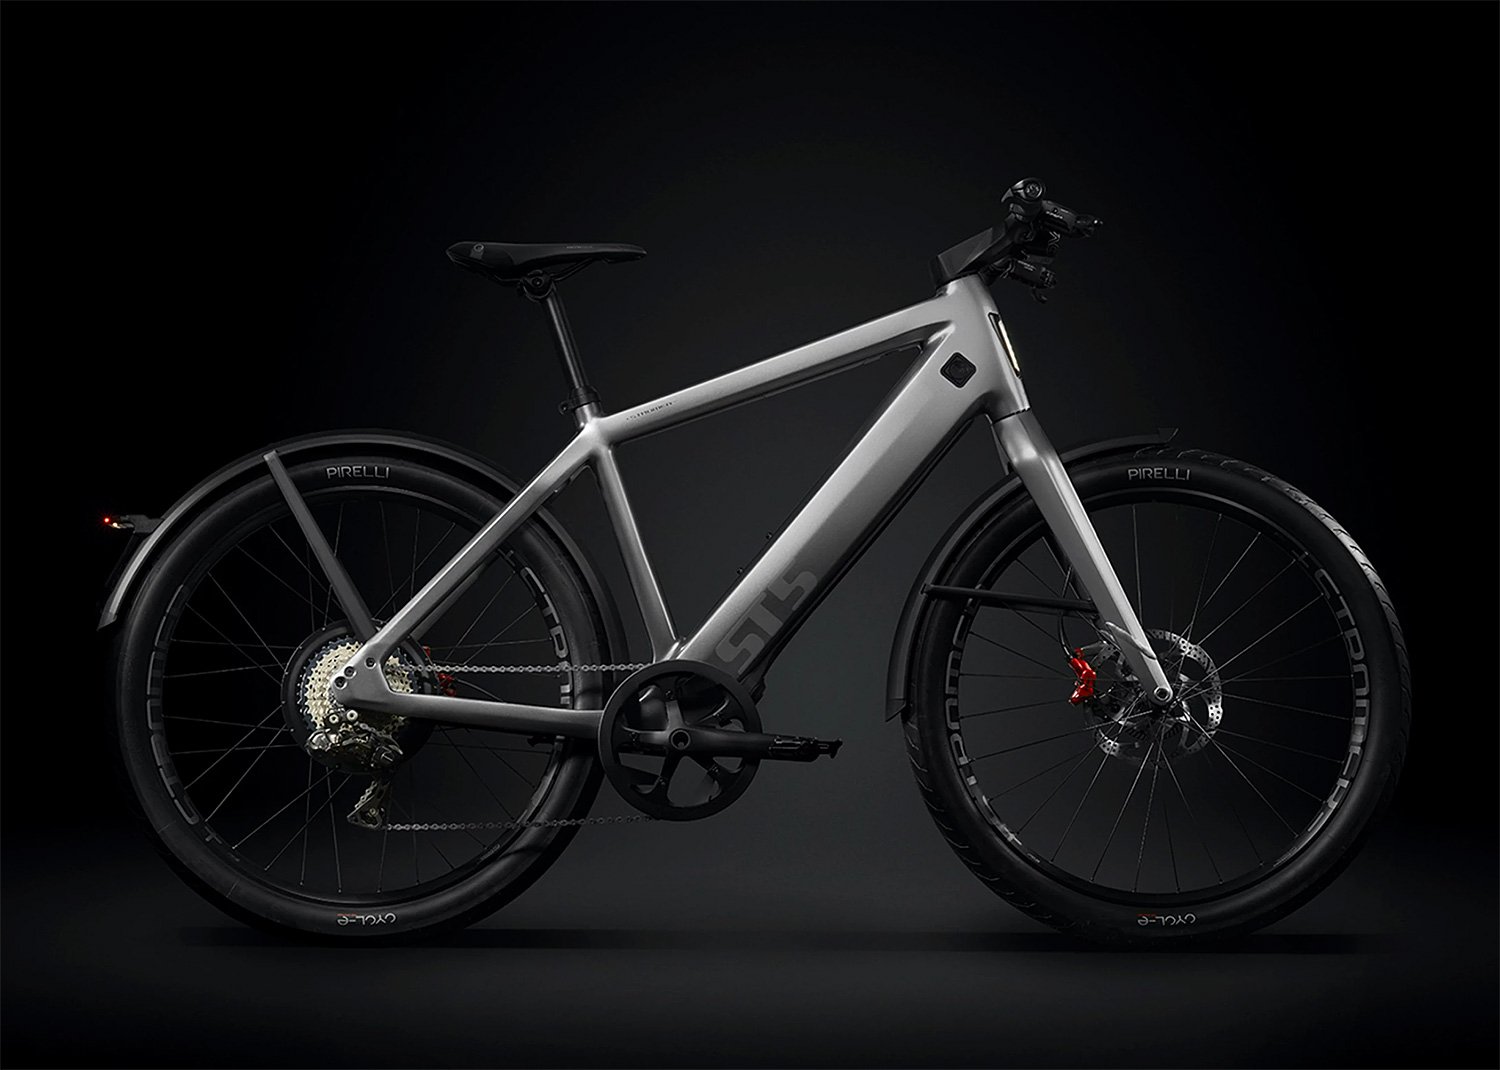 This e-Bike Has What The Others Don't at werd.com